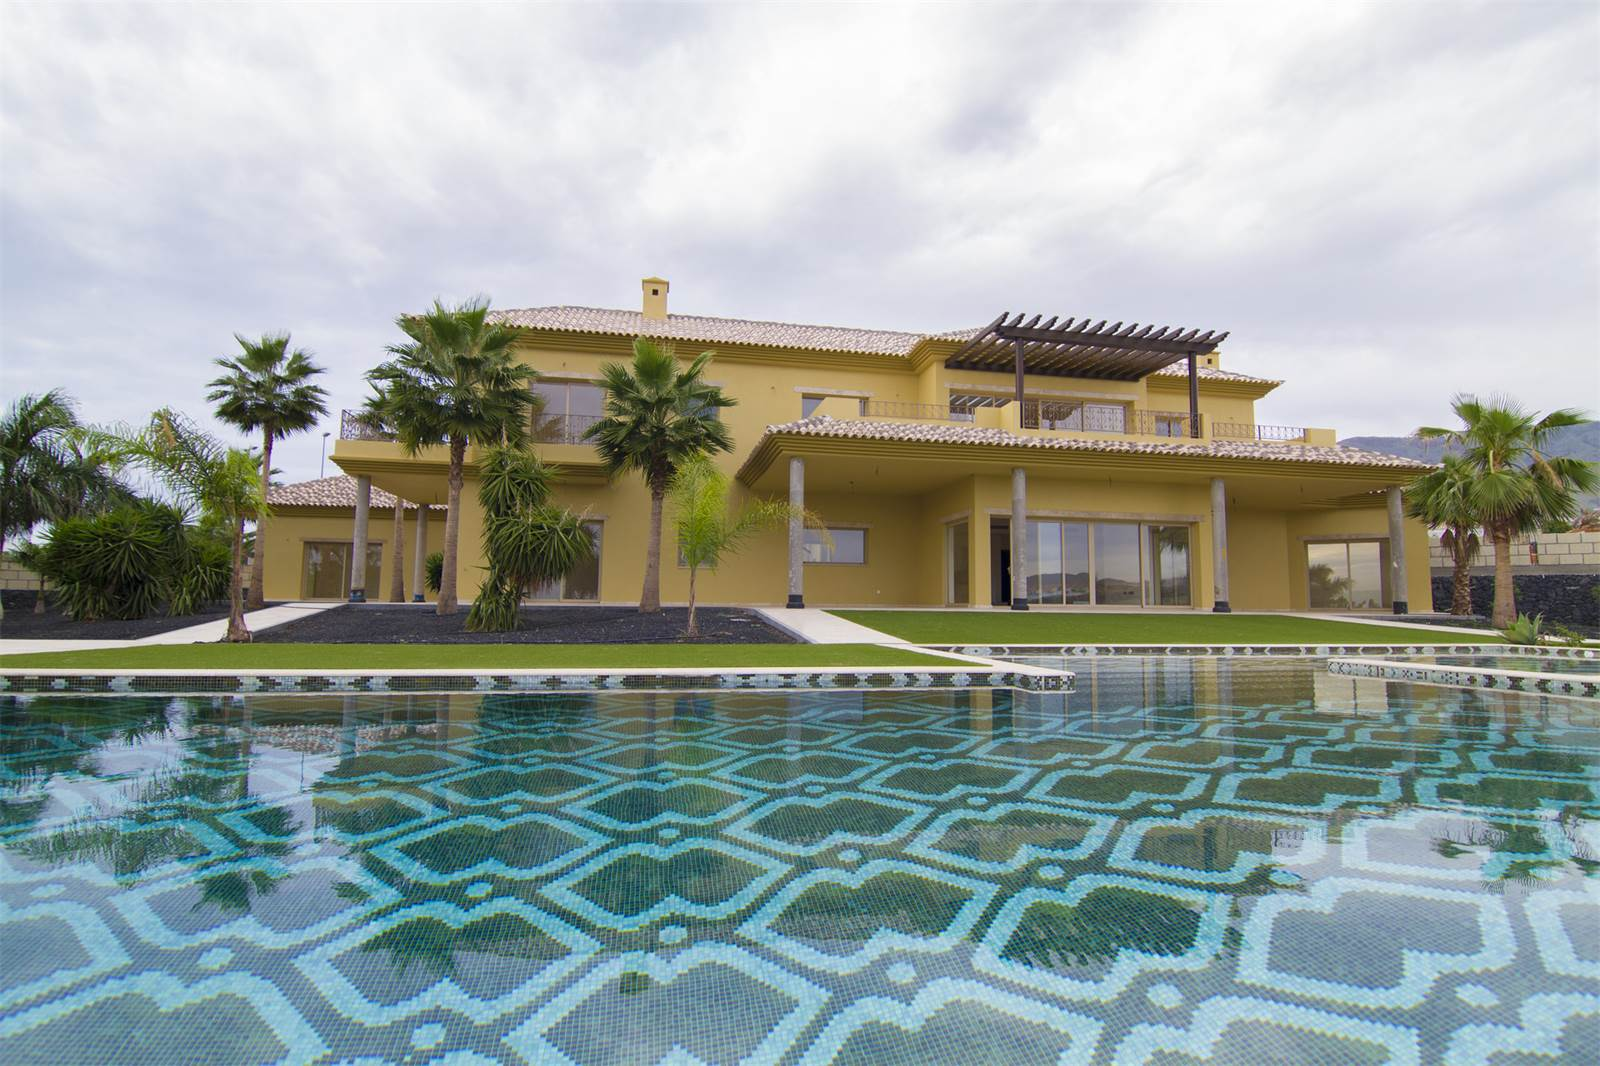 <b>7 Bedrooms, 7,373 sq. ft.</b><br/>Costa Adeje Golf course property with beautiful gardens